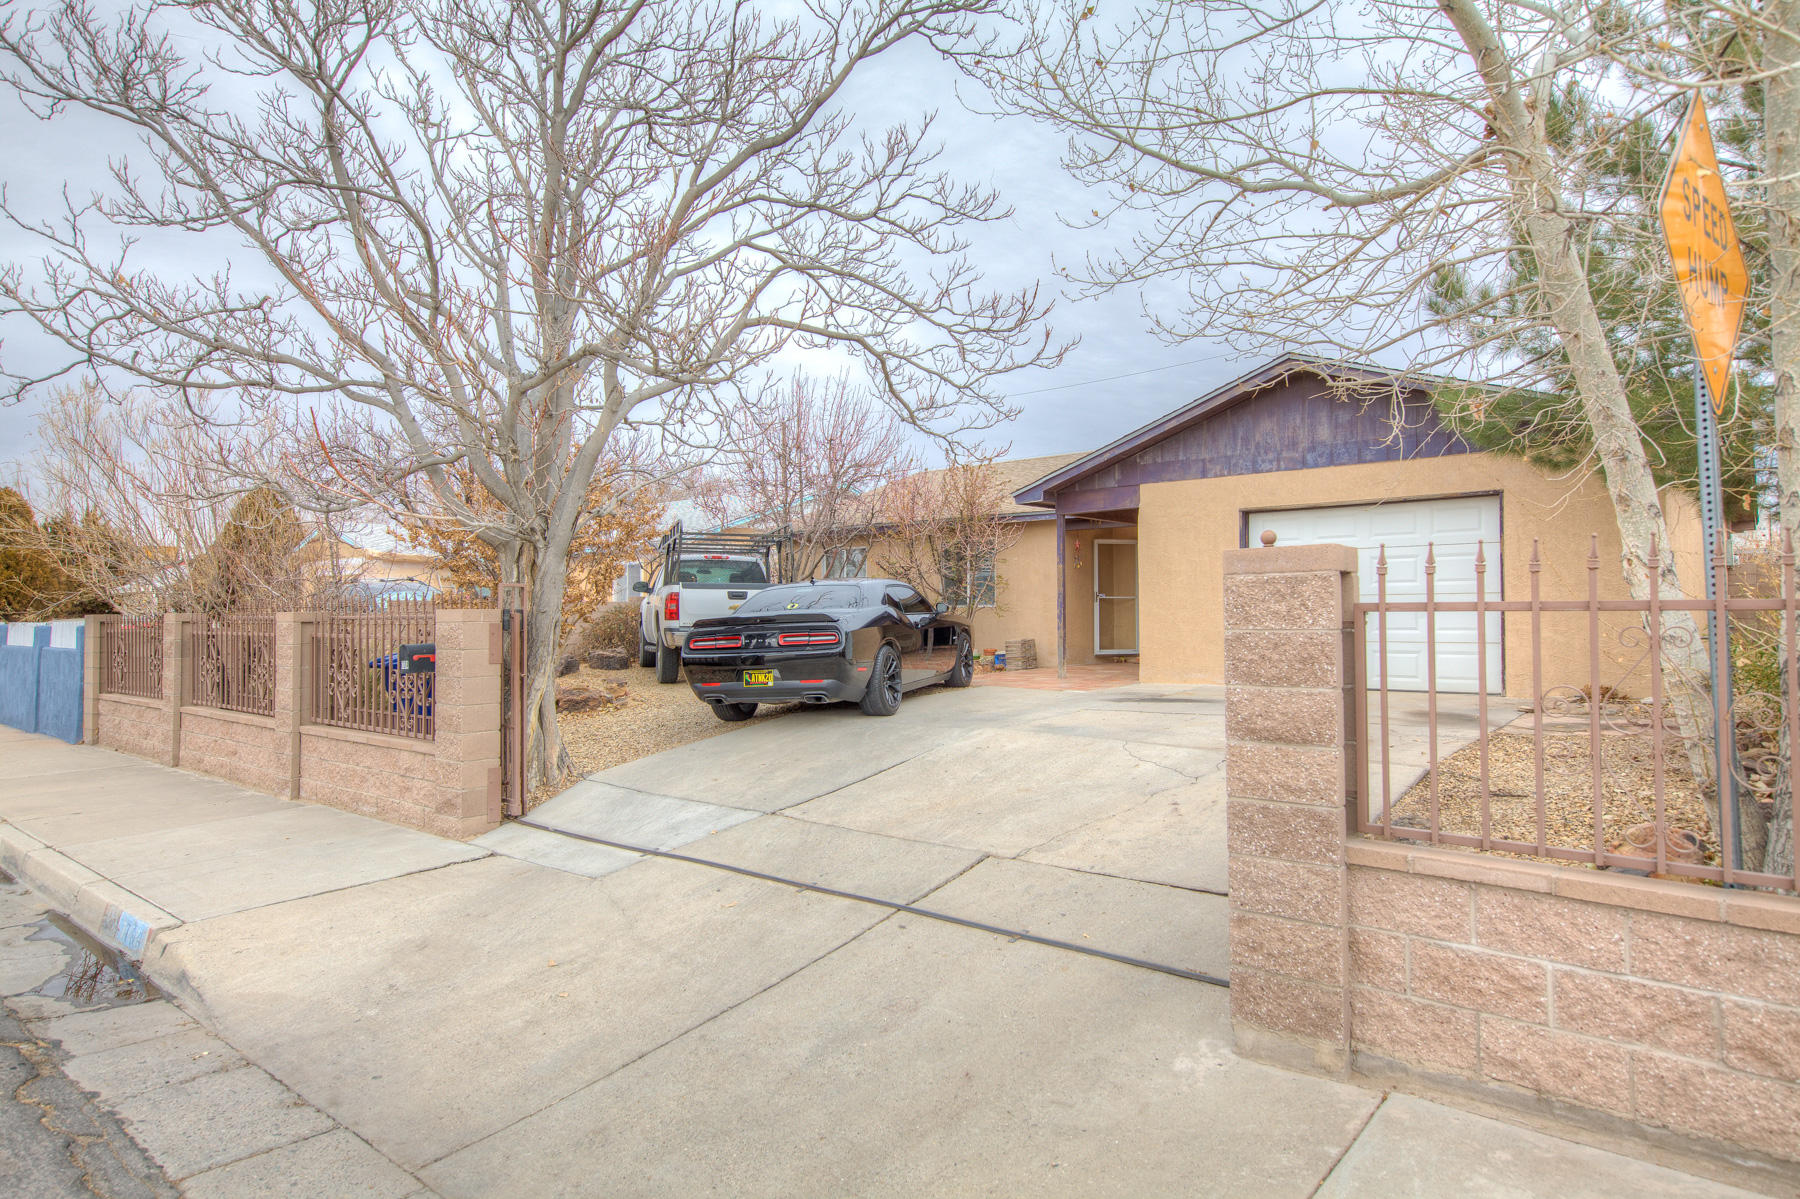 This home is fully fenced in the front and back for privacy. Tile floors throughout the home , no carpet. Granite counter tops add warmth to the kitchen.One Car Garage is oversized with a small workshop area.